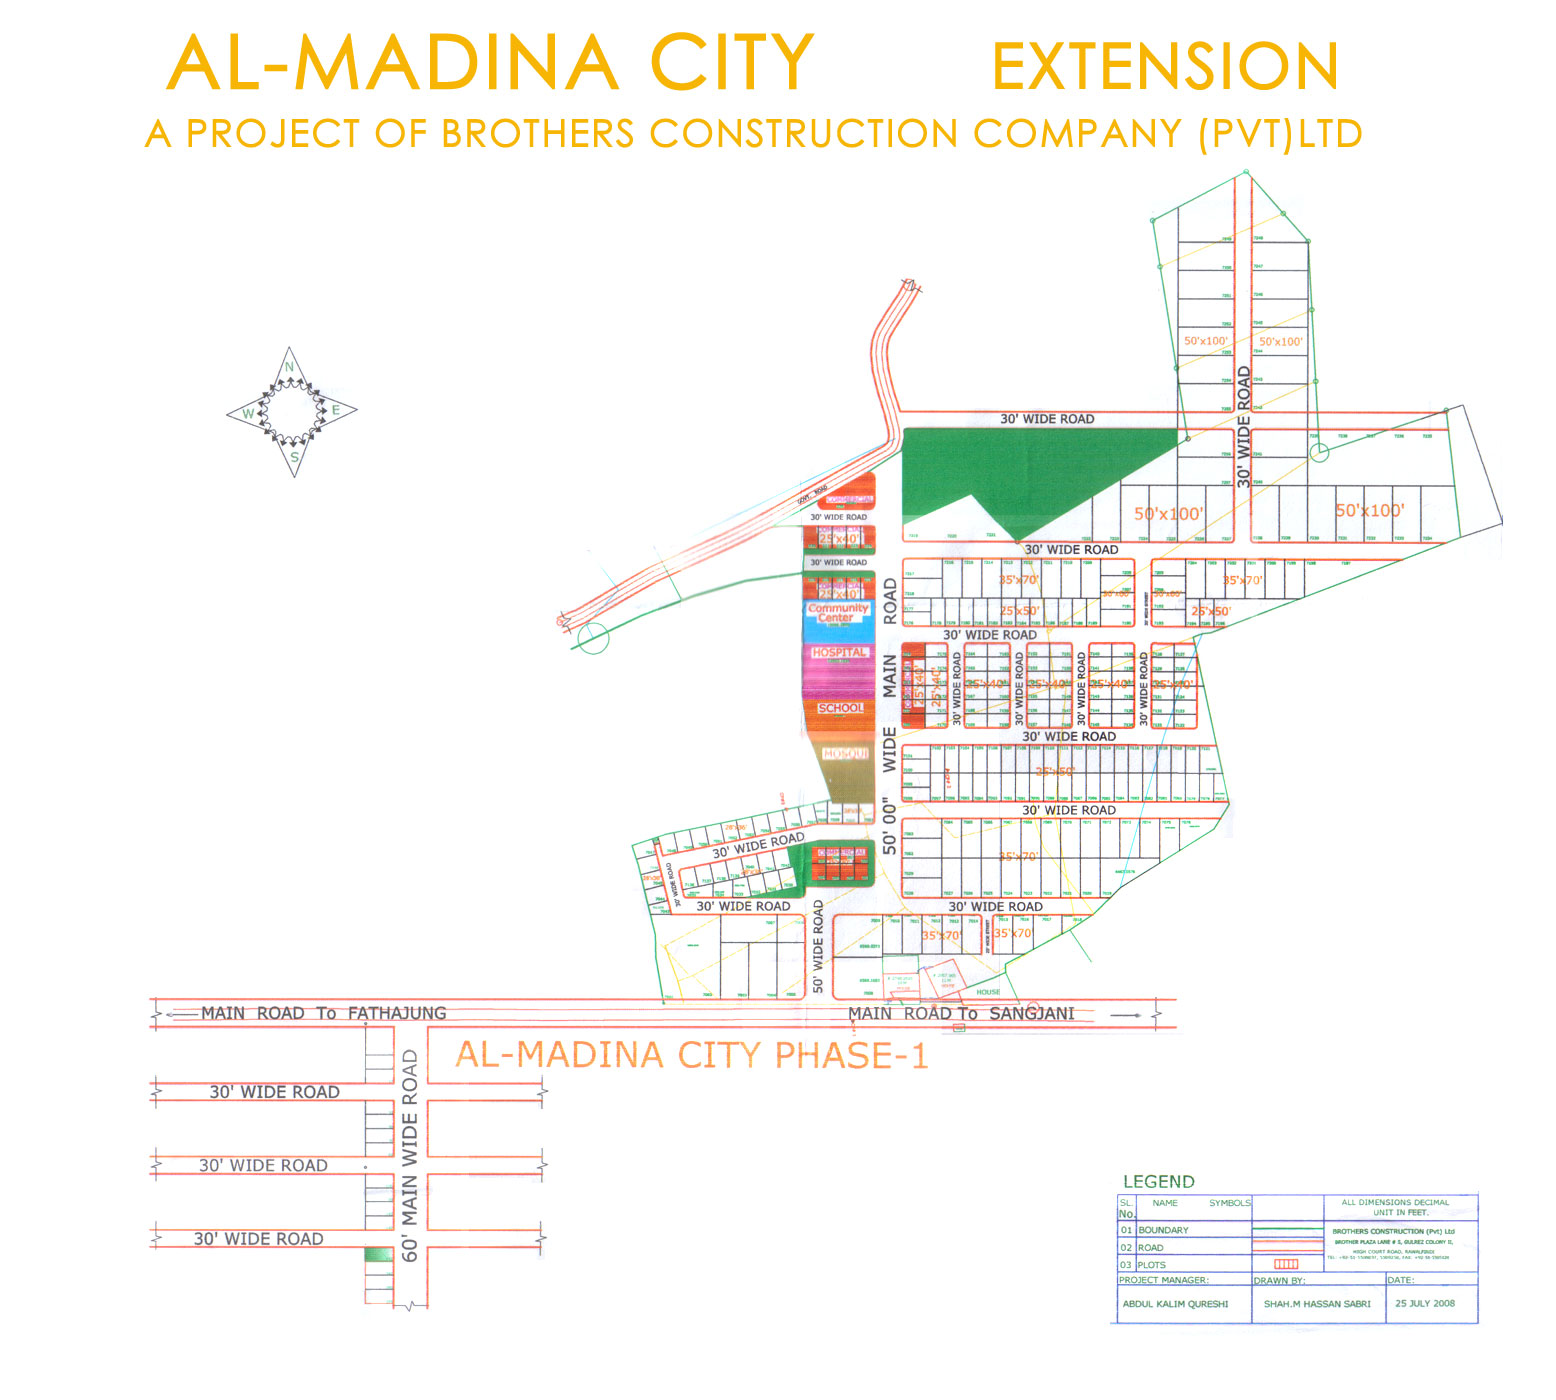 Al Madinah City Extension